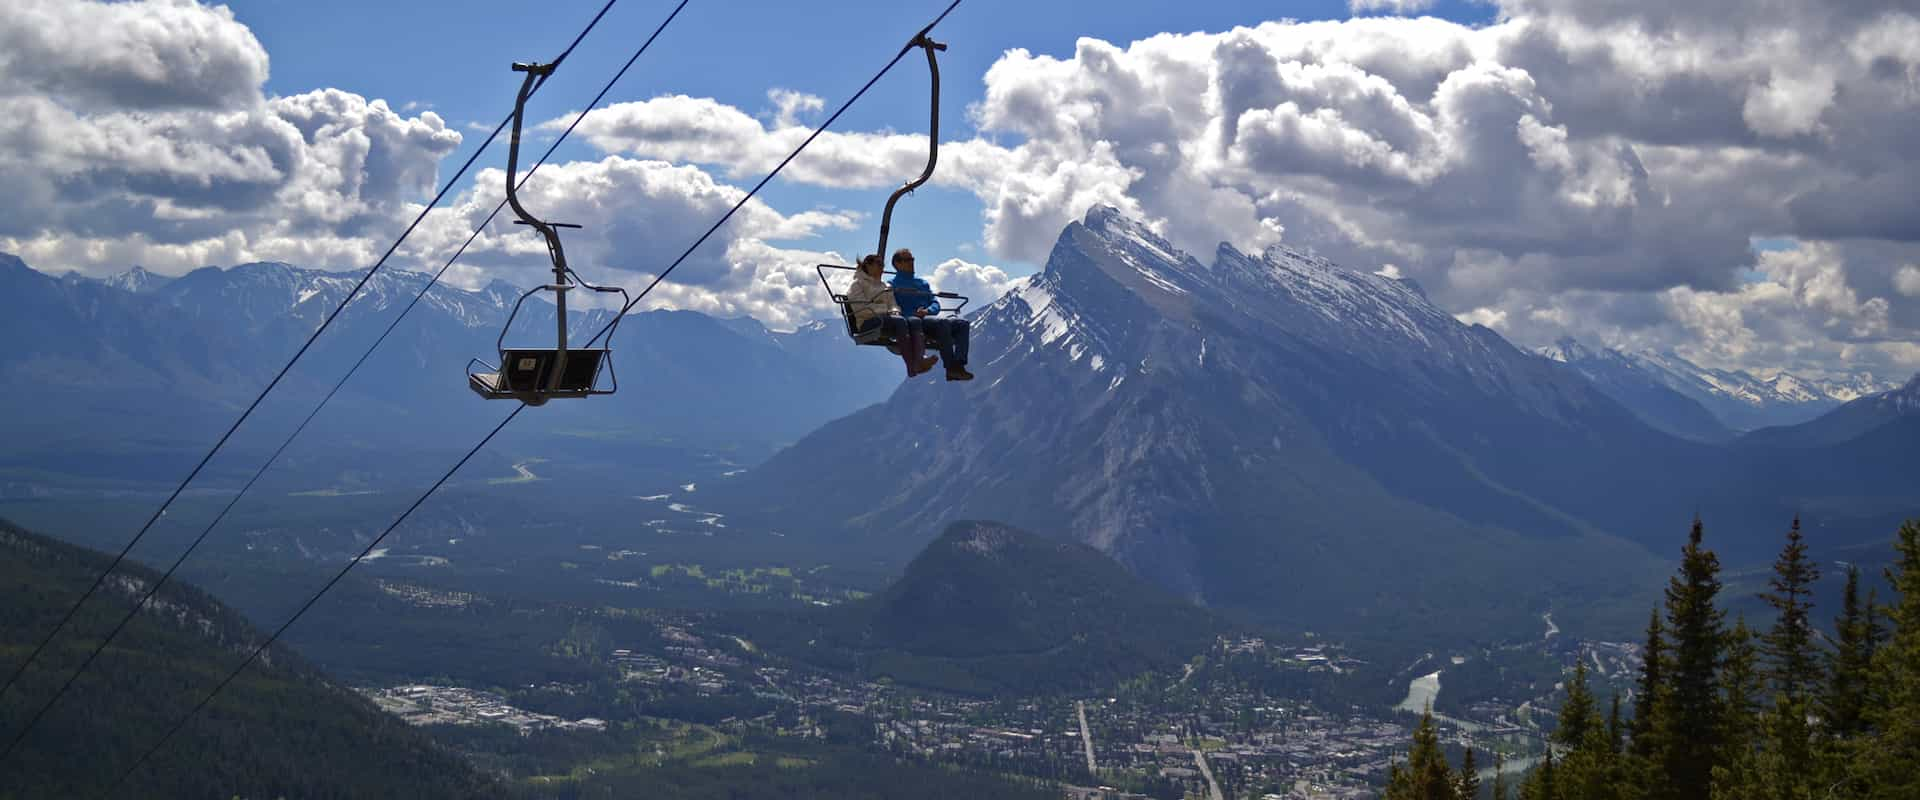 Banff Sightseeing Chairlift Discover Banff Tours